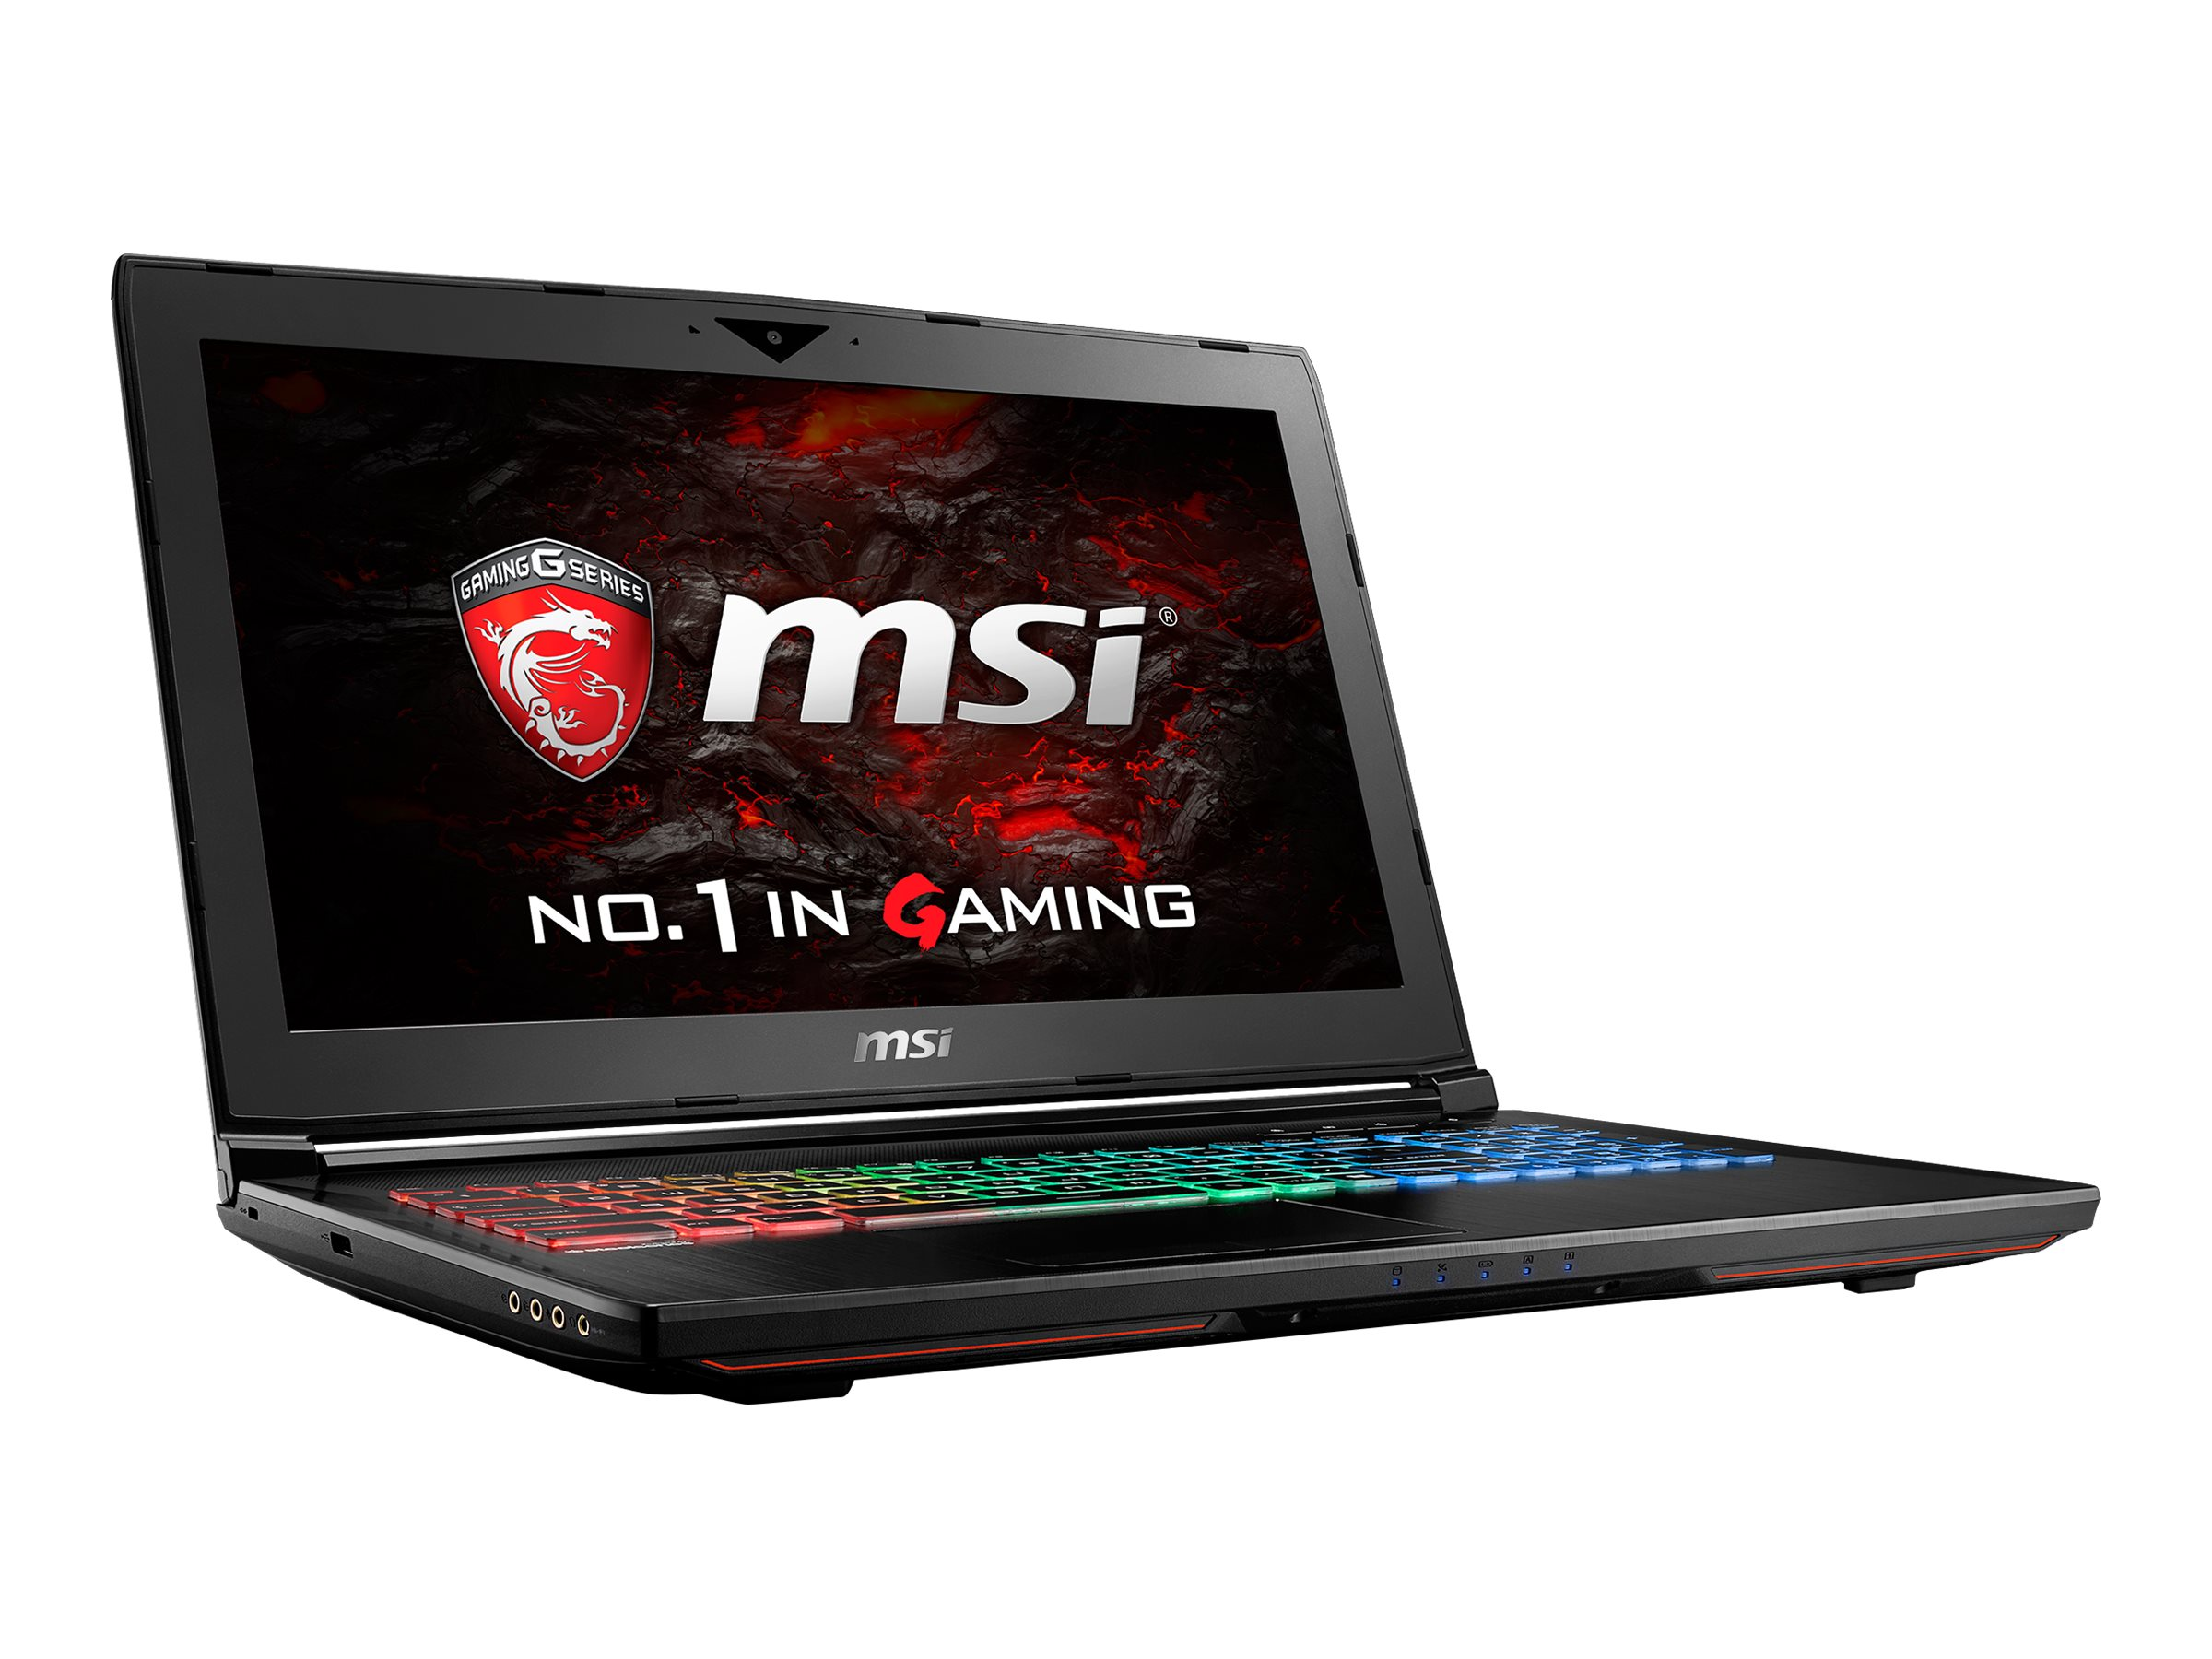 MSI GT62VR Dominator-012 Notebook PC